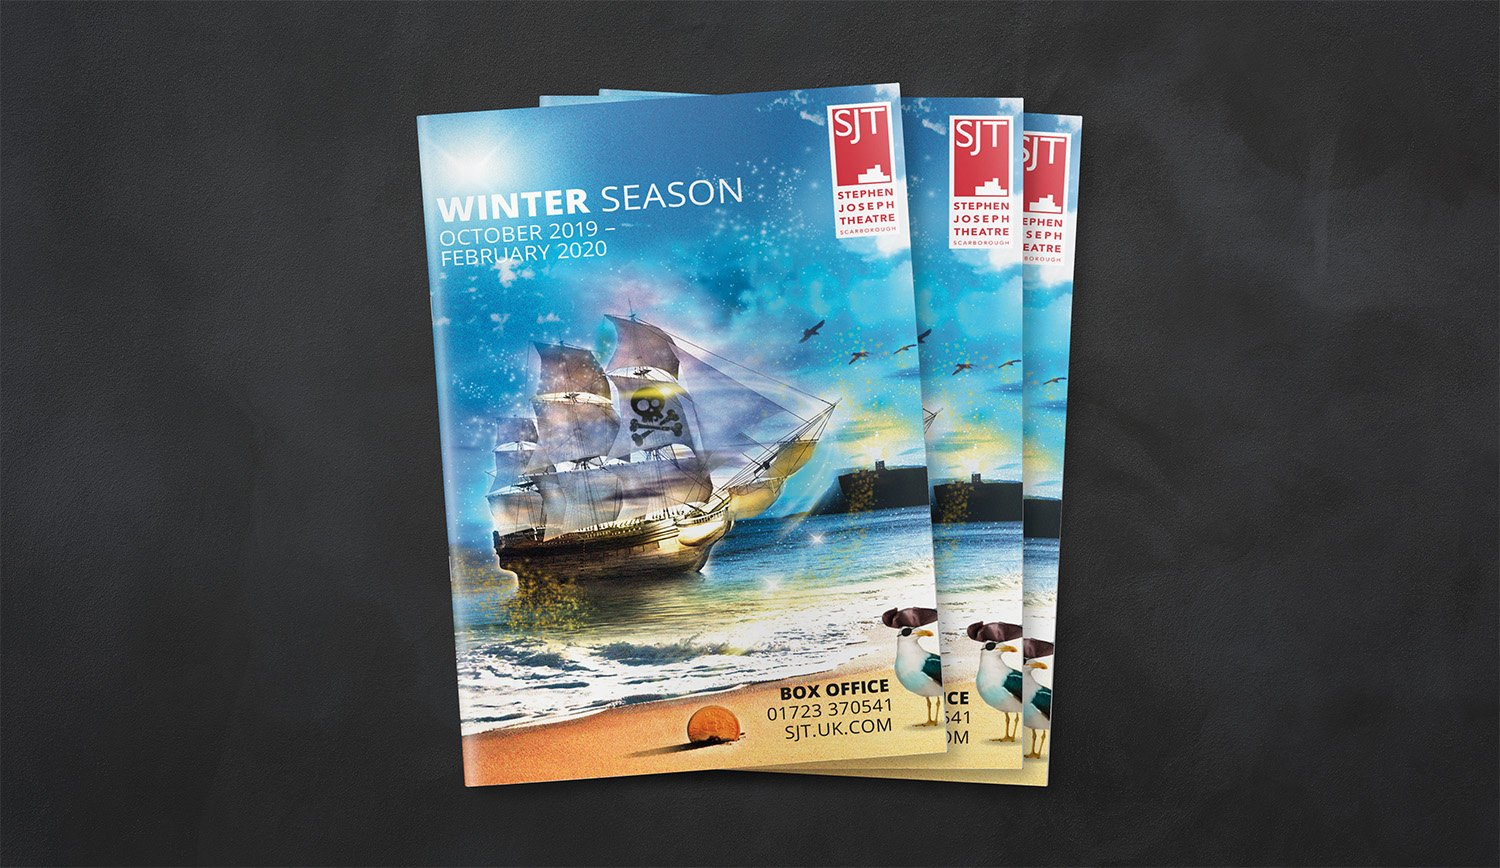 Main cover for the SJT Guide - Winter Season 2019-2020